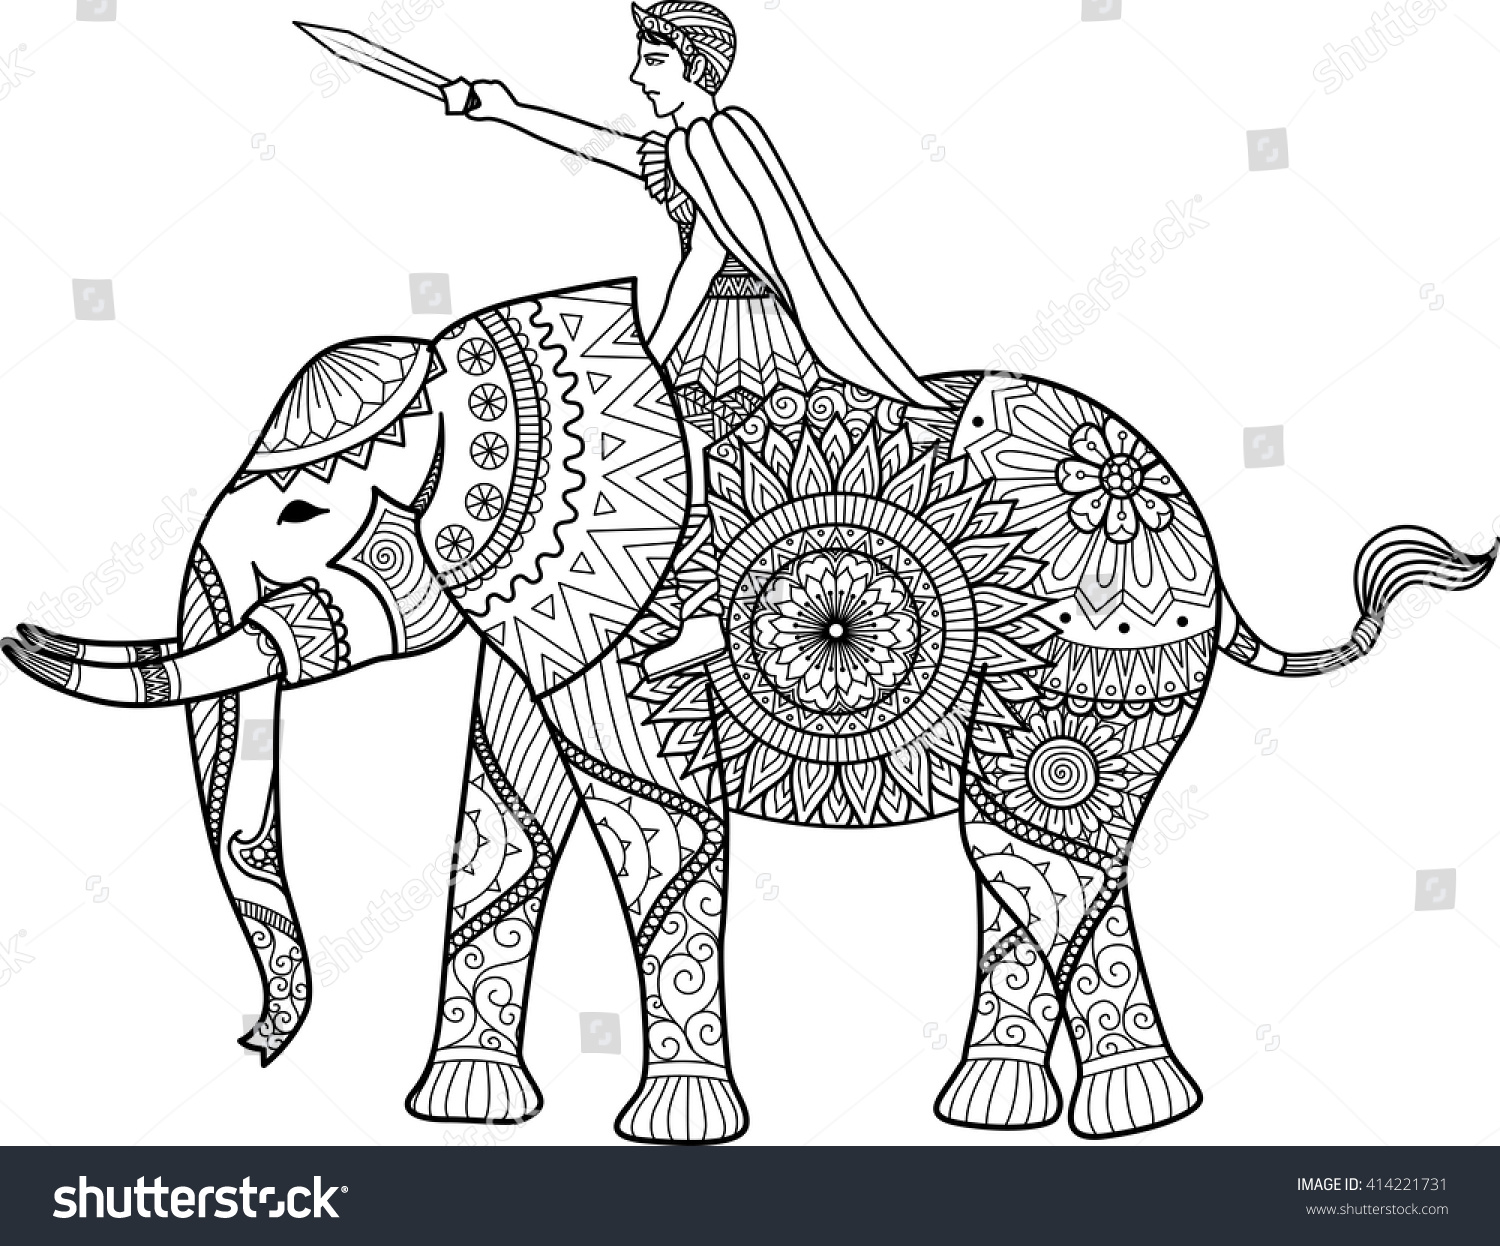 zentangle sylized of warrior riding elephant coloring book for adult cards t shirt